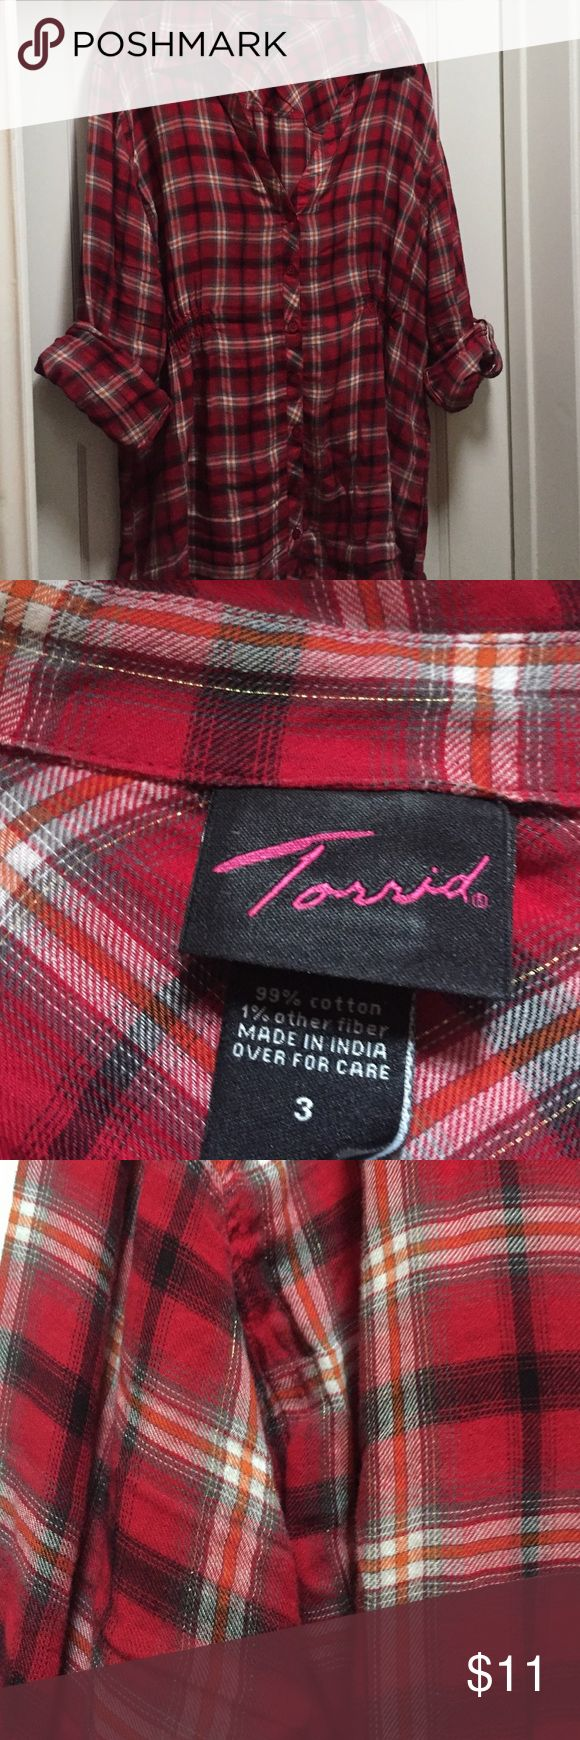 Torrid red plaid shirt, 3 Super cute plaid shirt with ruching at back. Red plaid with gold woven throughout. torrid Tops Button Down Shirts